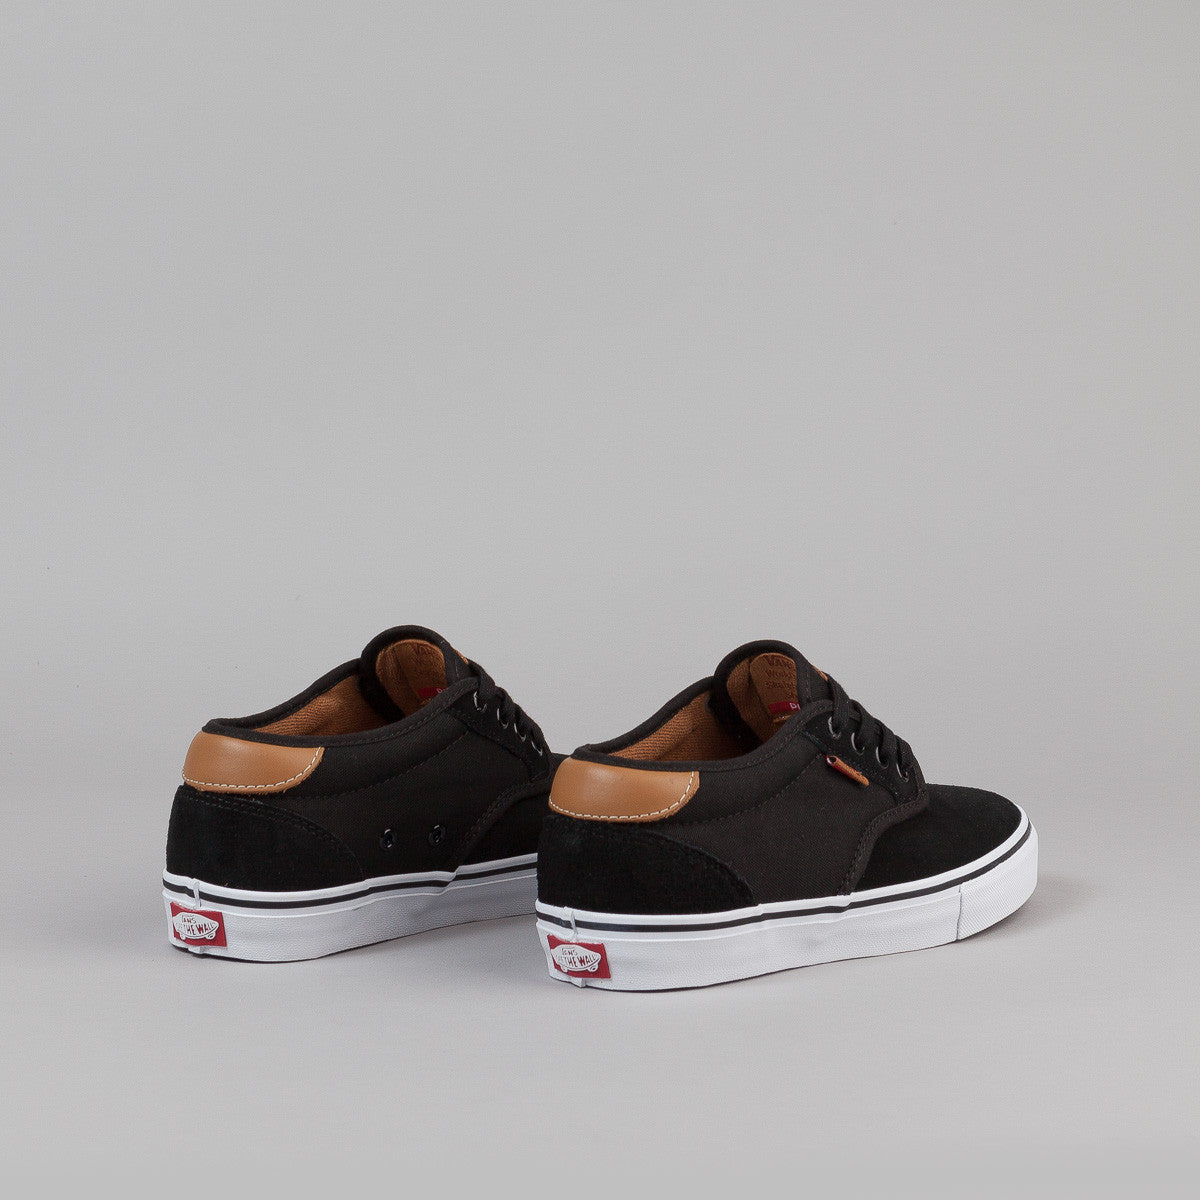 Vans Chima Estate Pro Shoes - Black / White / Tan